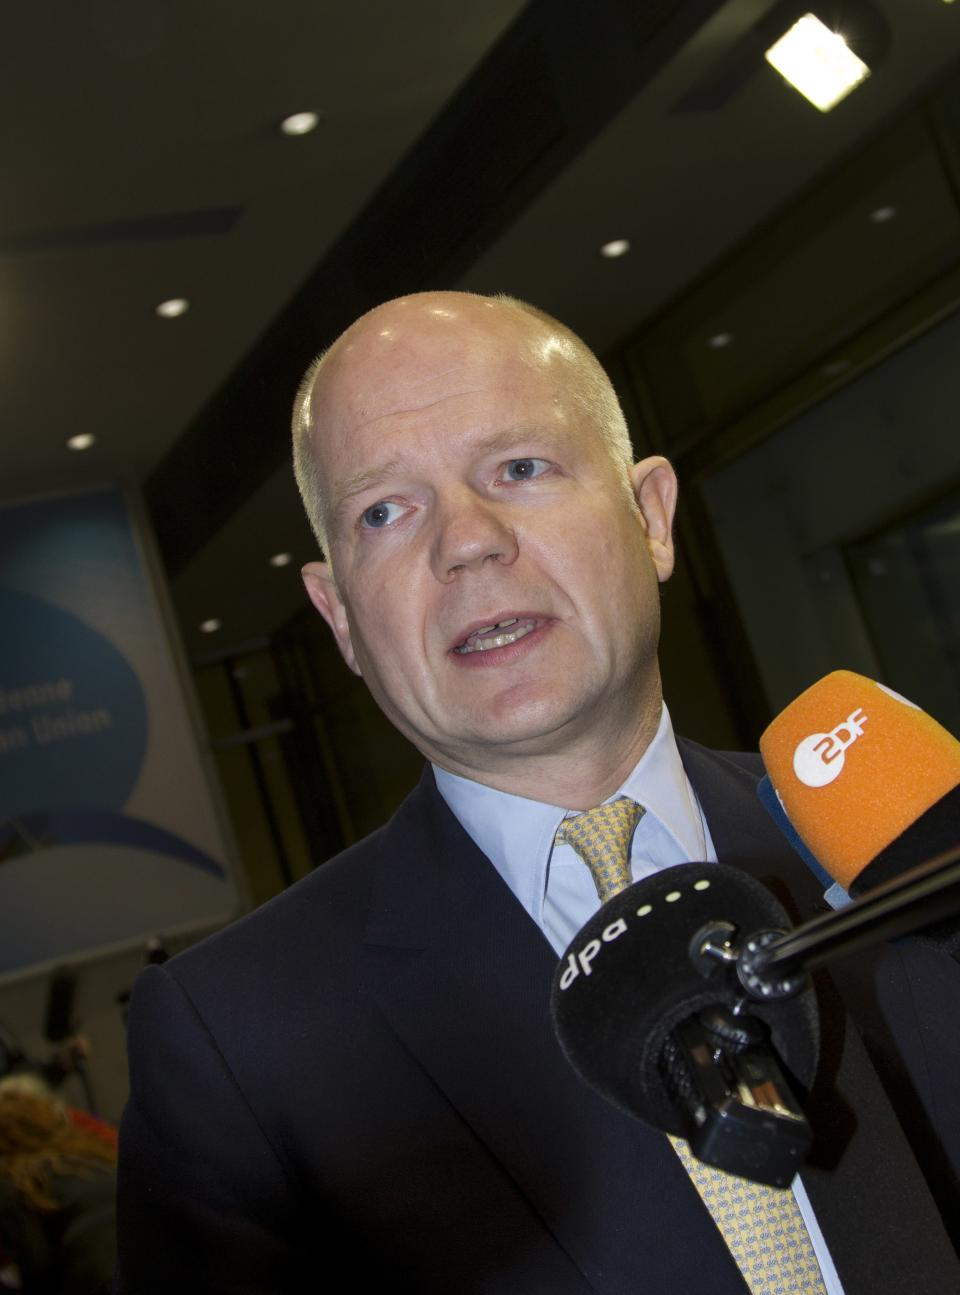 British Foreign Minister William Hague speaks with the media as he arrives for a meeting of EU Foreign Ministers in Luxembourg on Monday Oct. 15, 2012. Britain, Germany and France say they expect the European Union to approve even tougher sanctions on Iran to prevent it from developing nuclear weapons. (AP Photo/Virginia Mayo)